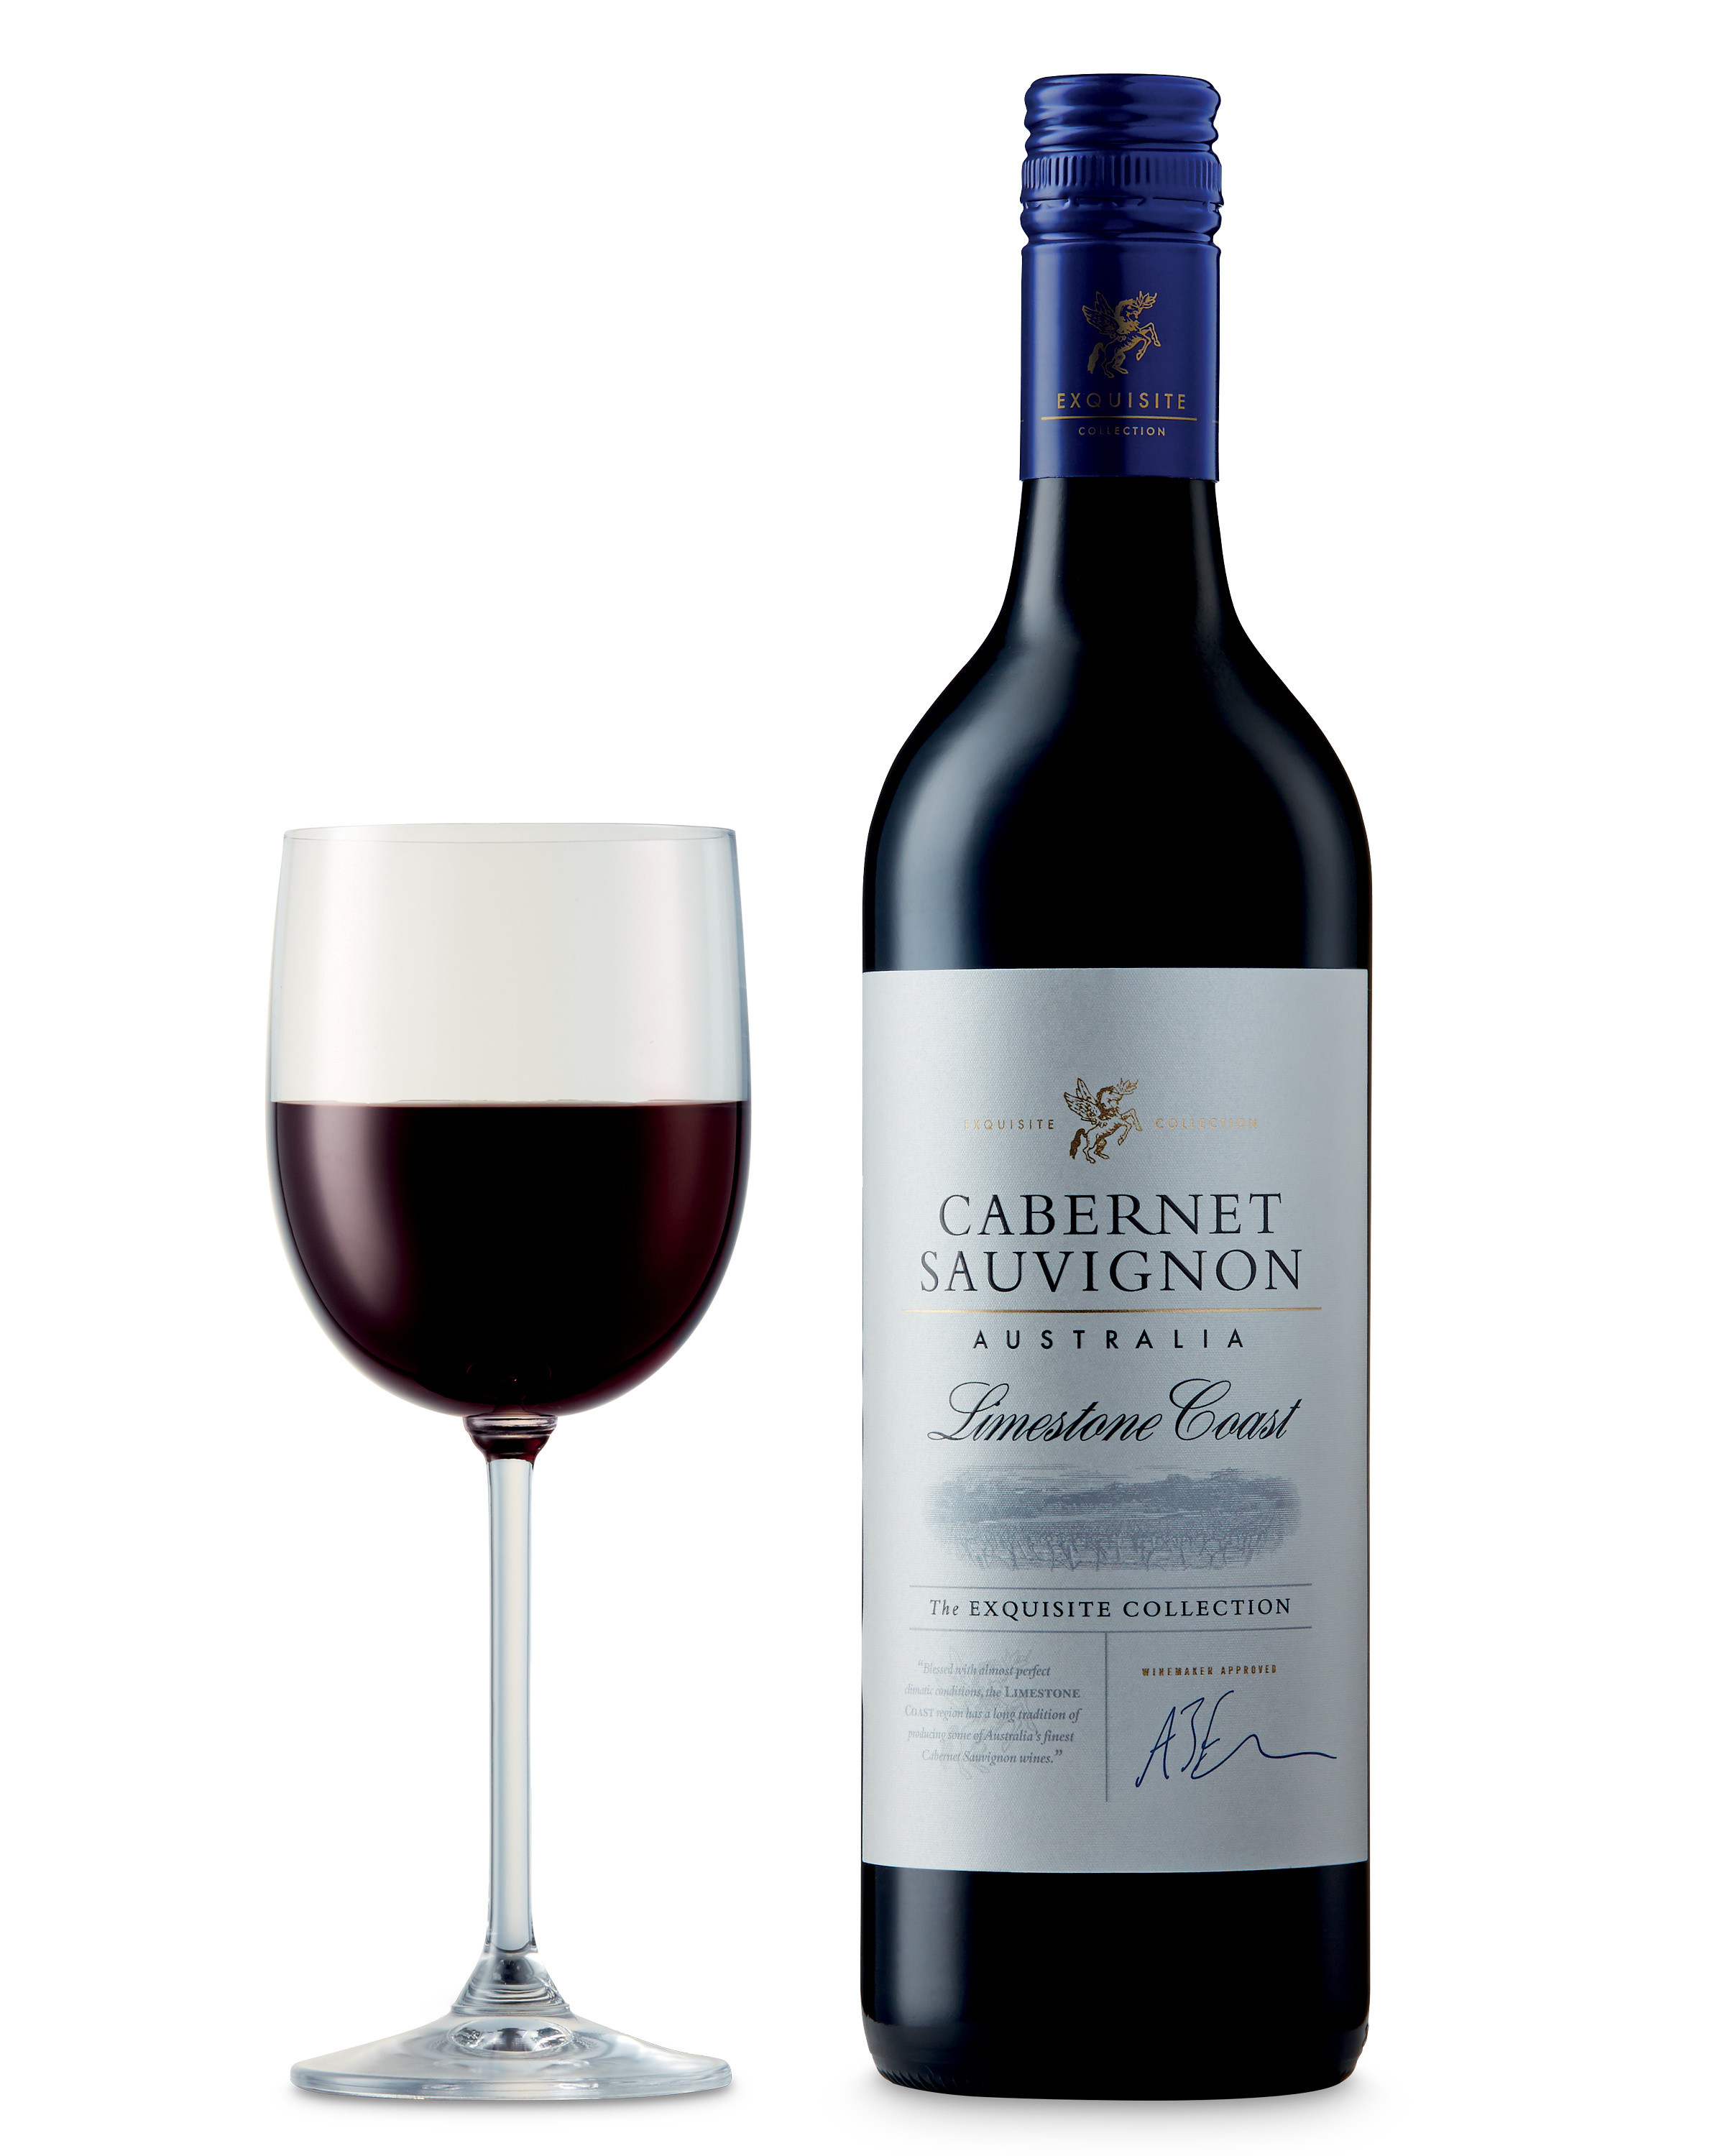 Exquisite Collection Cabernet Sauvignon 2014